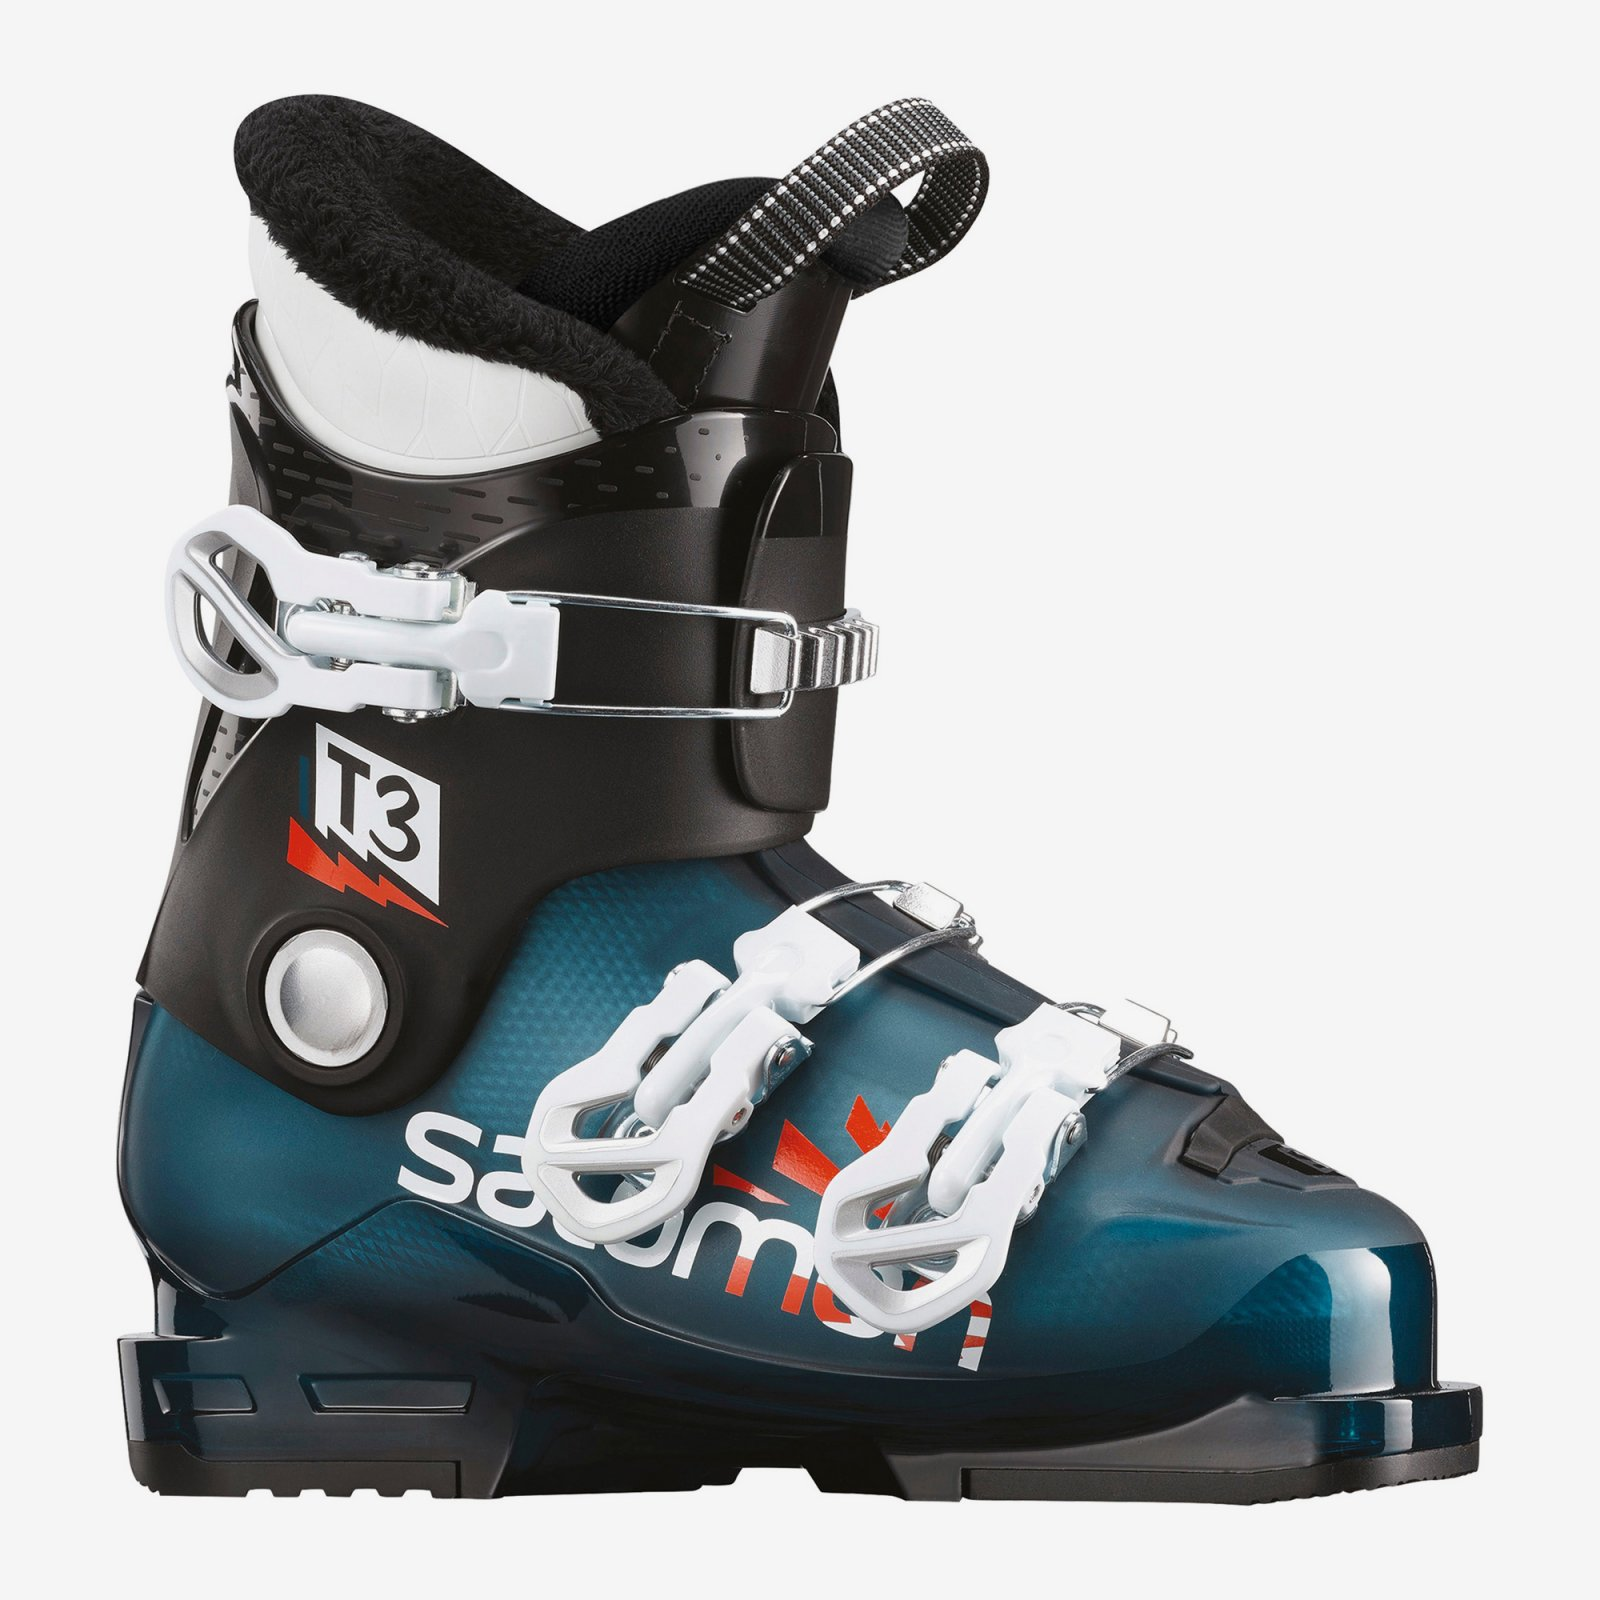 2020 Salomon T3 RT Junior Ski Boots